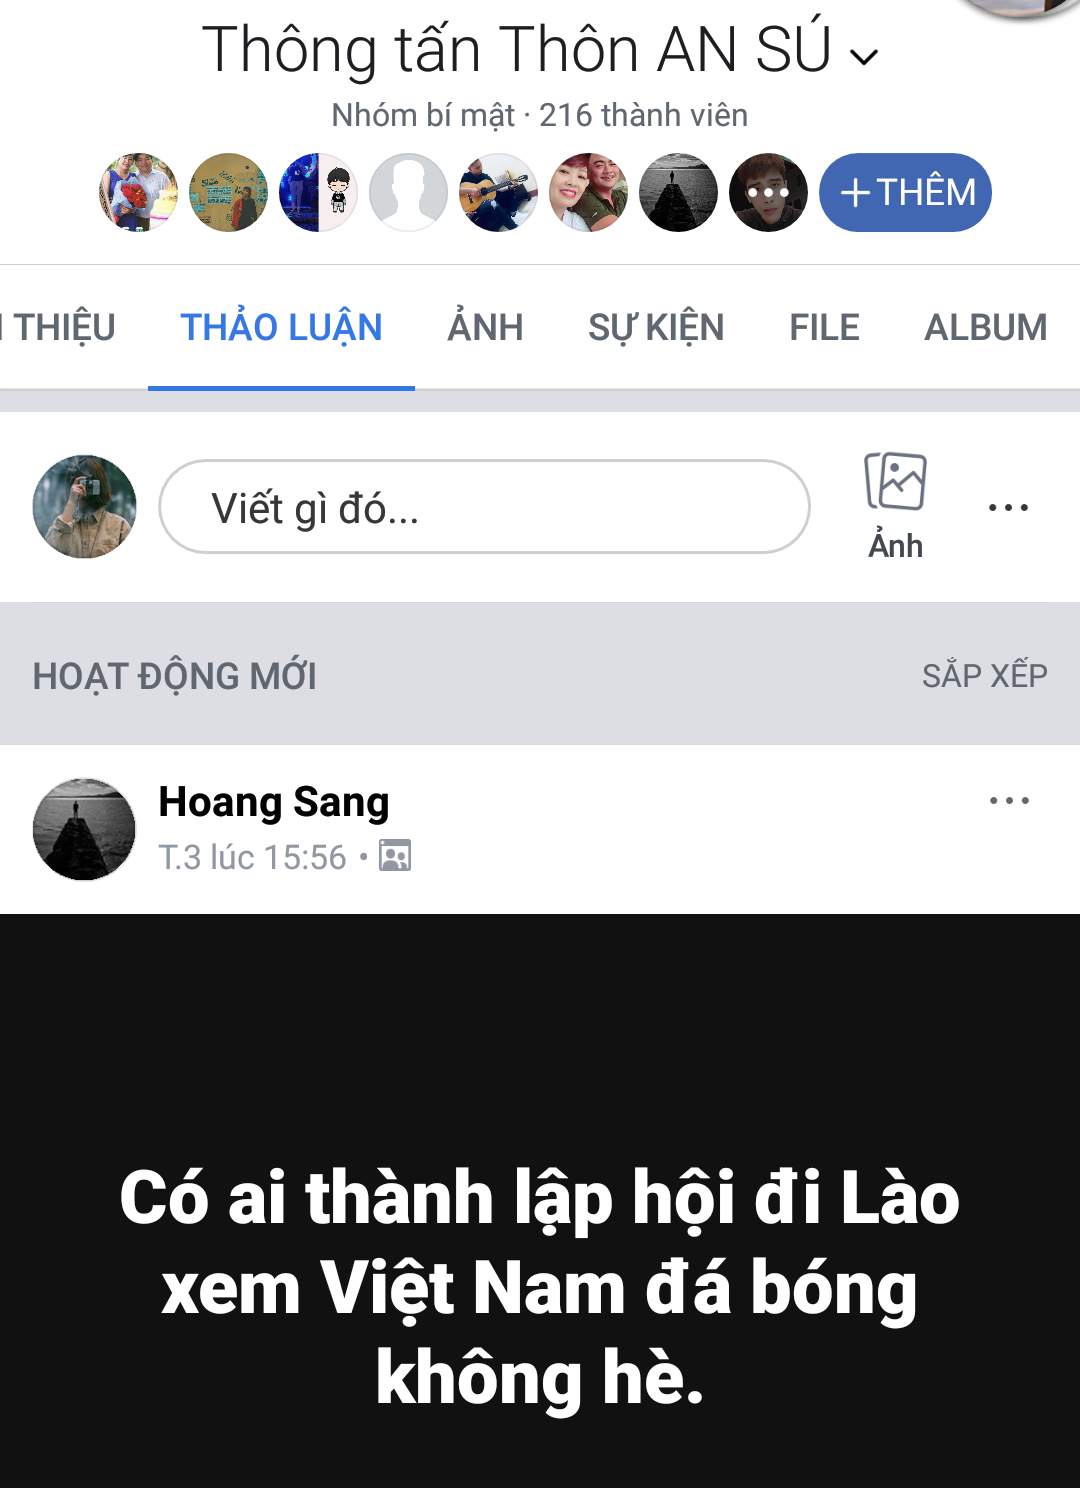 Laos vs Vietnam: Speak with Laos fans enjoy Vietnamese Tel rock AFF CUP 2018 - Photo 2.